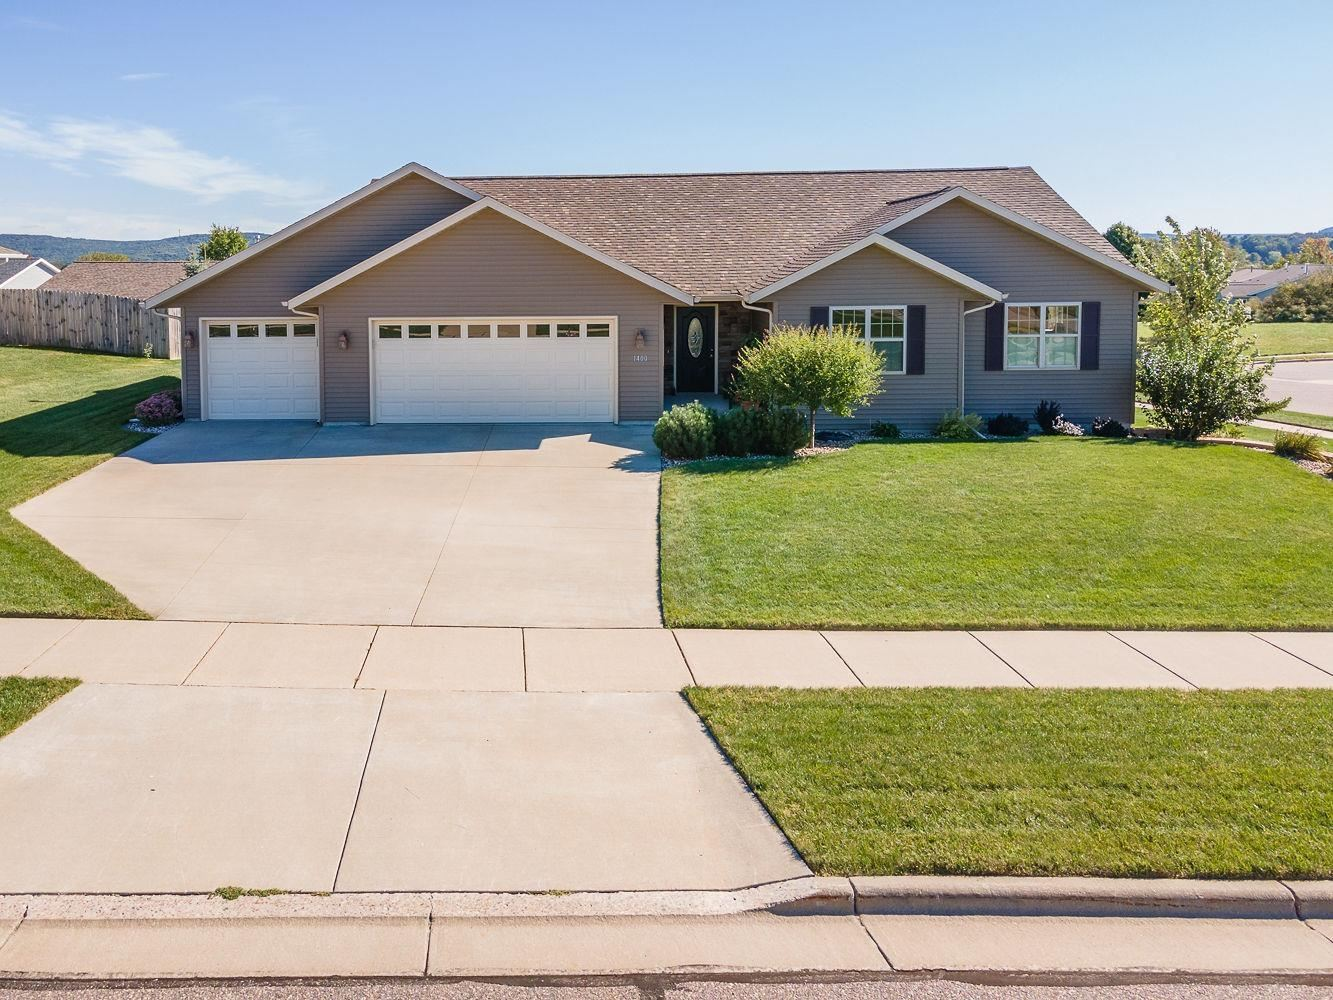 1400 Tillberry Dr, Baraboo, WI 53913 - #: 1920503